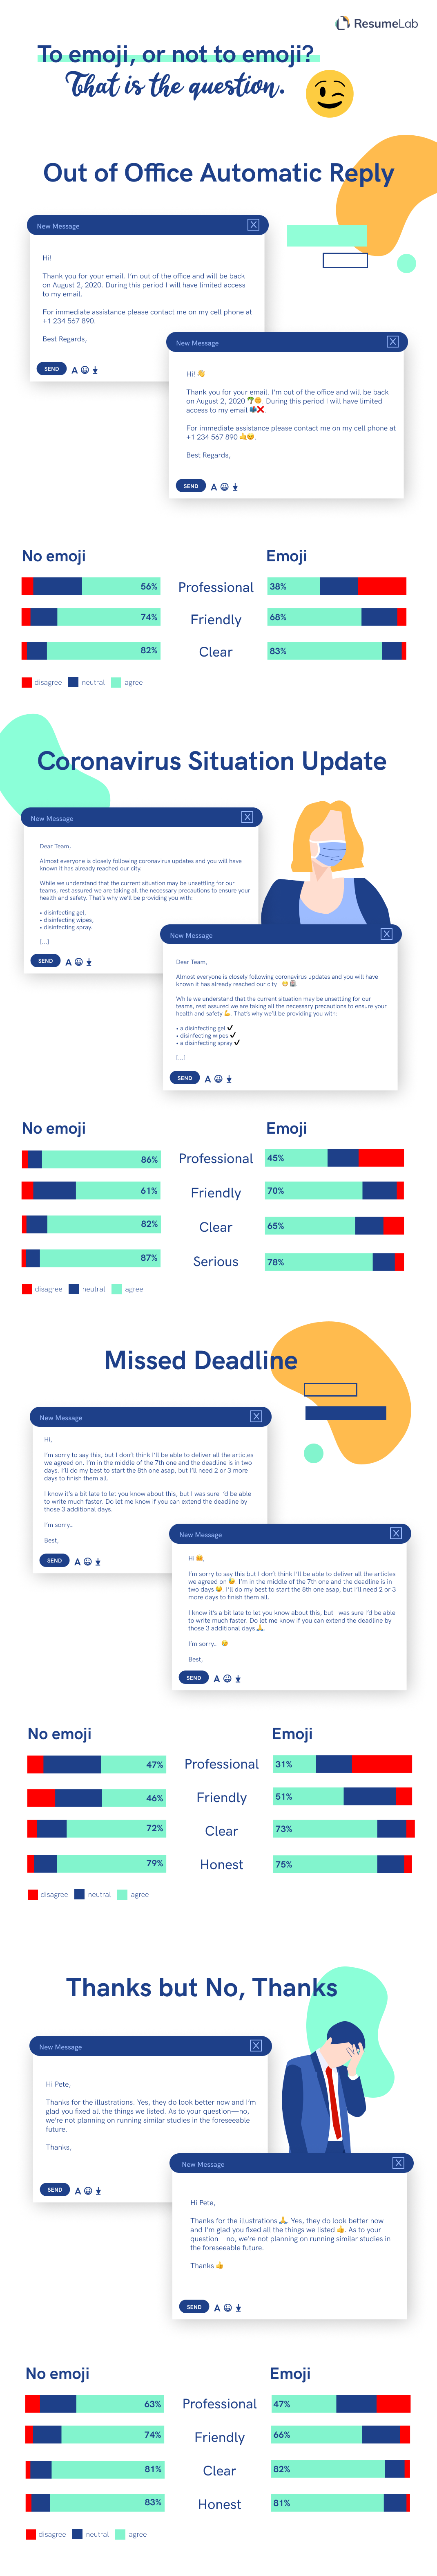 Infographic assessing the impact of emojis in work emails.